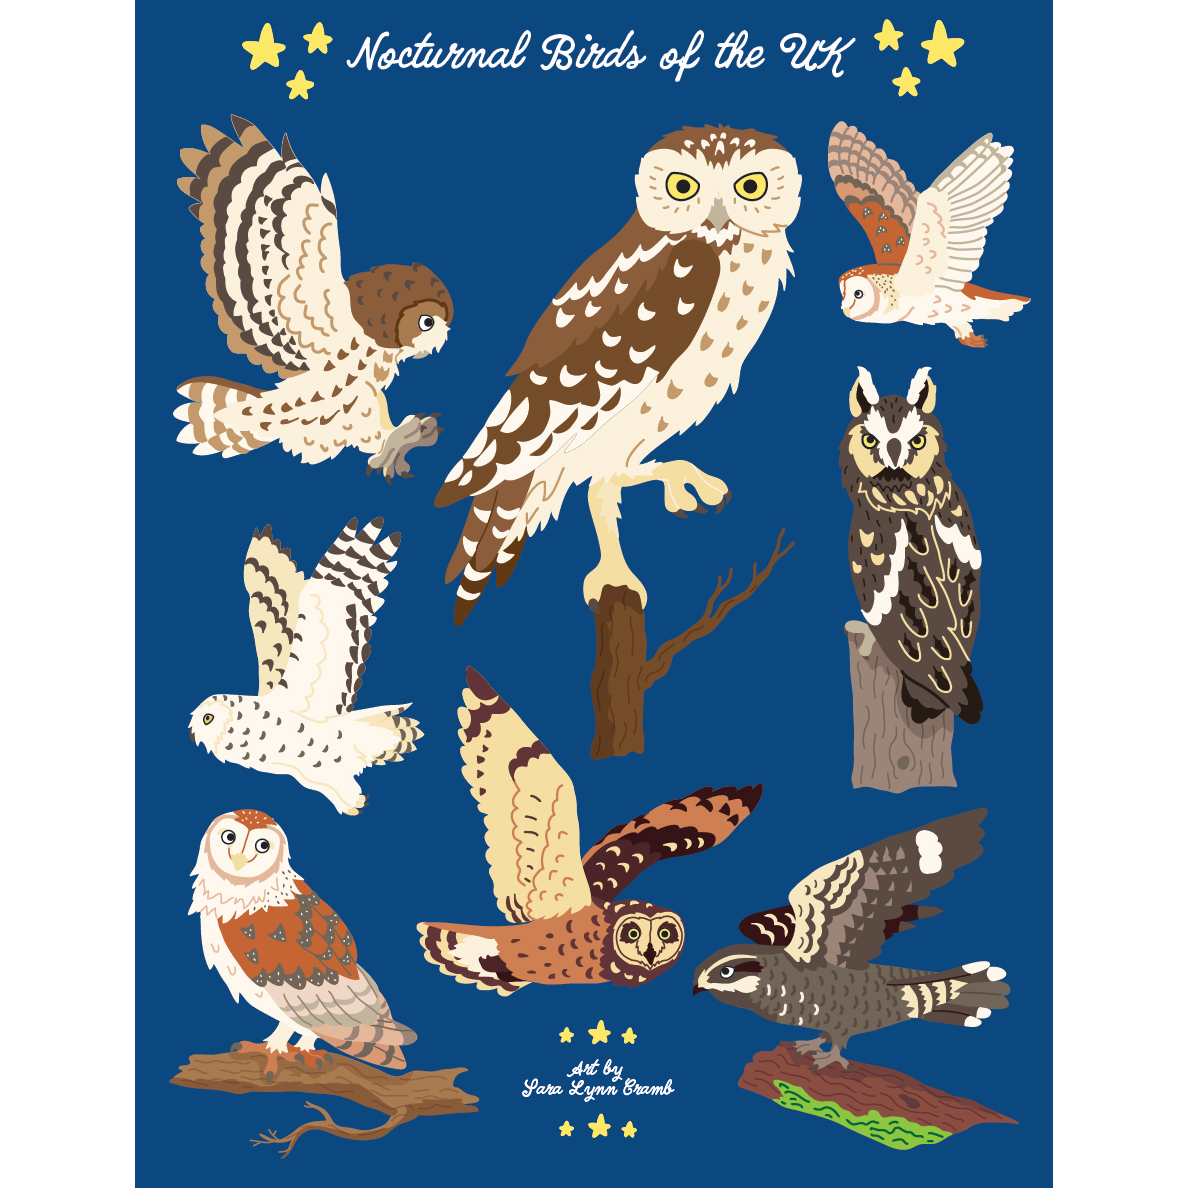 Nocturnal Birds